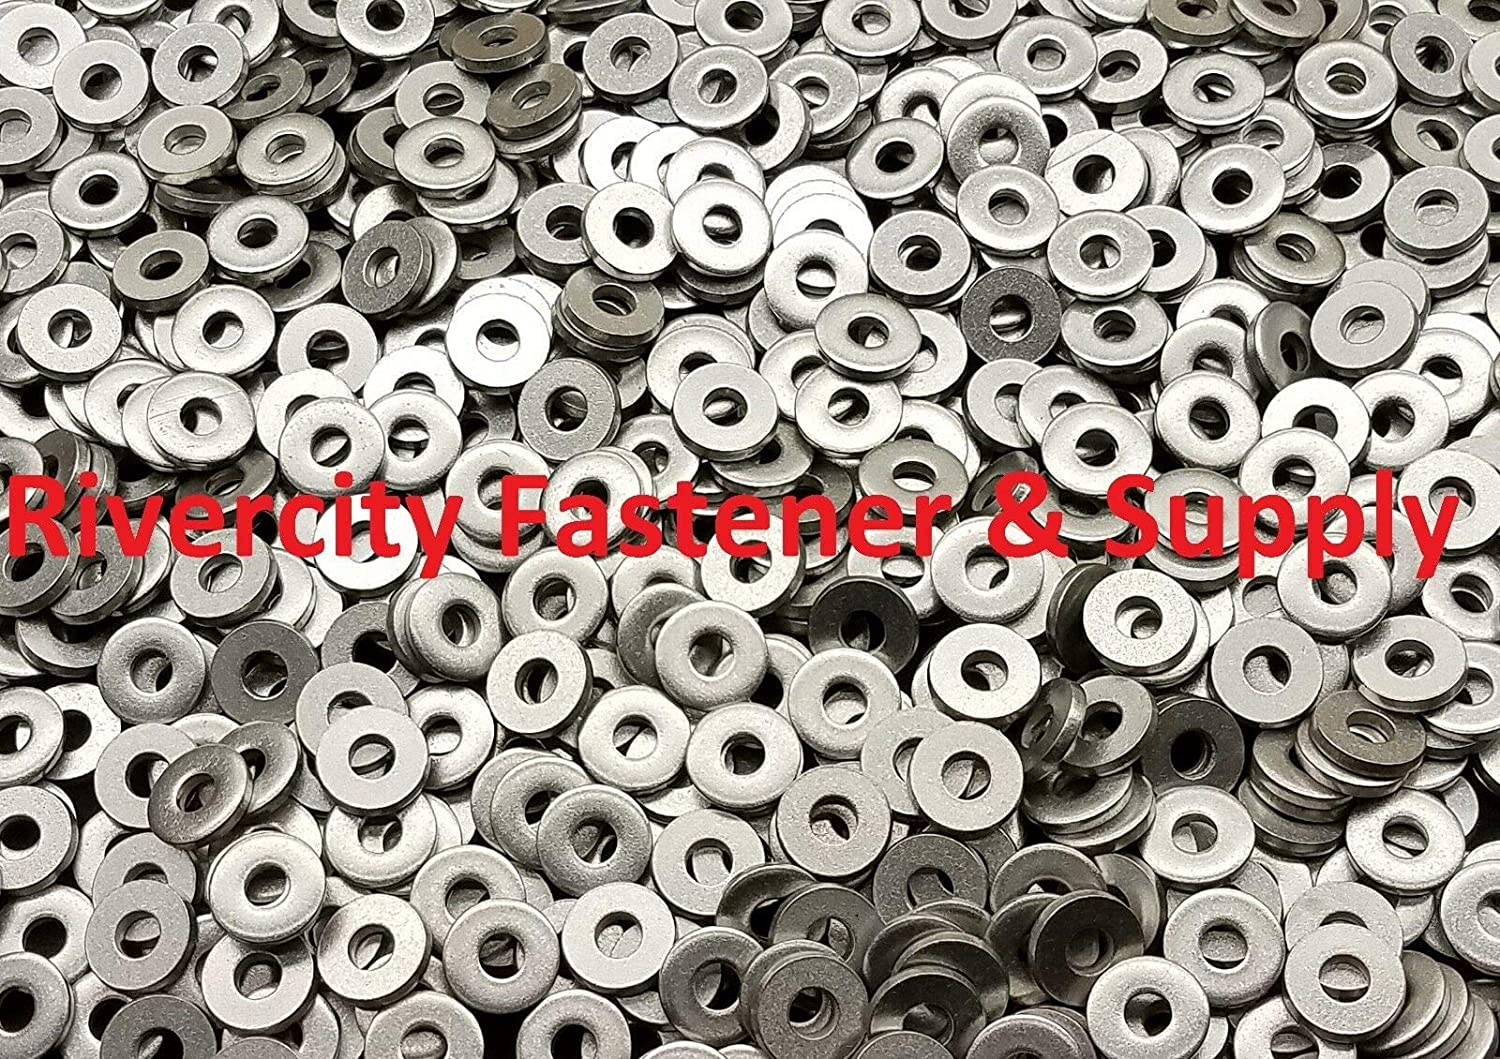 M6 Metric Stainless Steel Extra Thick Heavy Duty 6mm Flat Washers 100